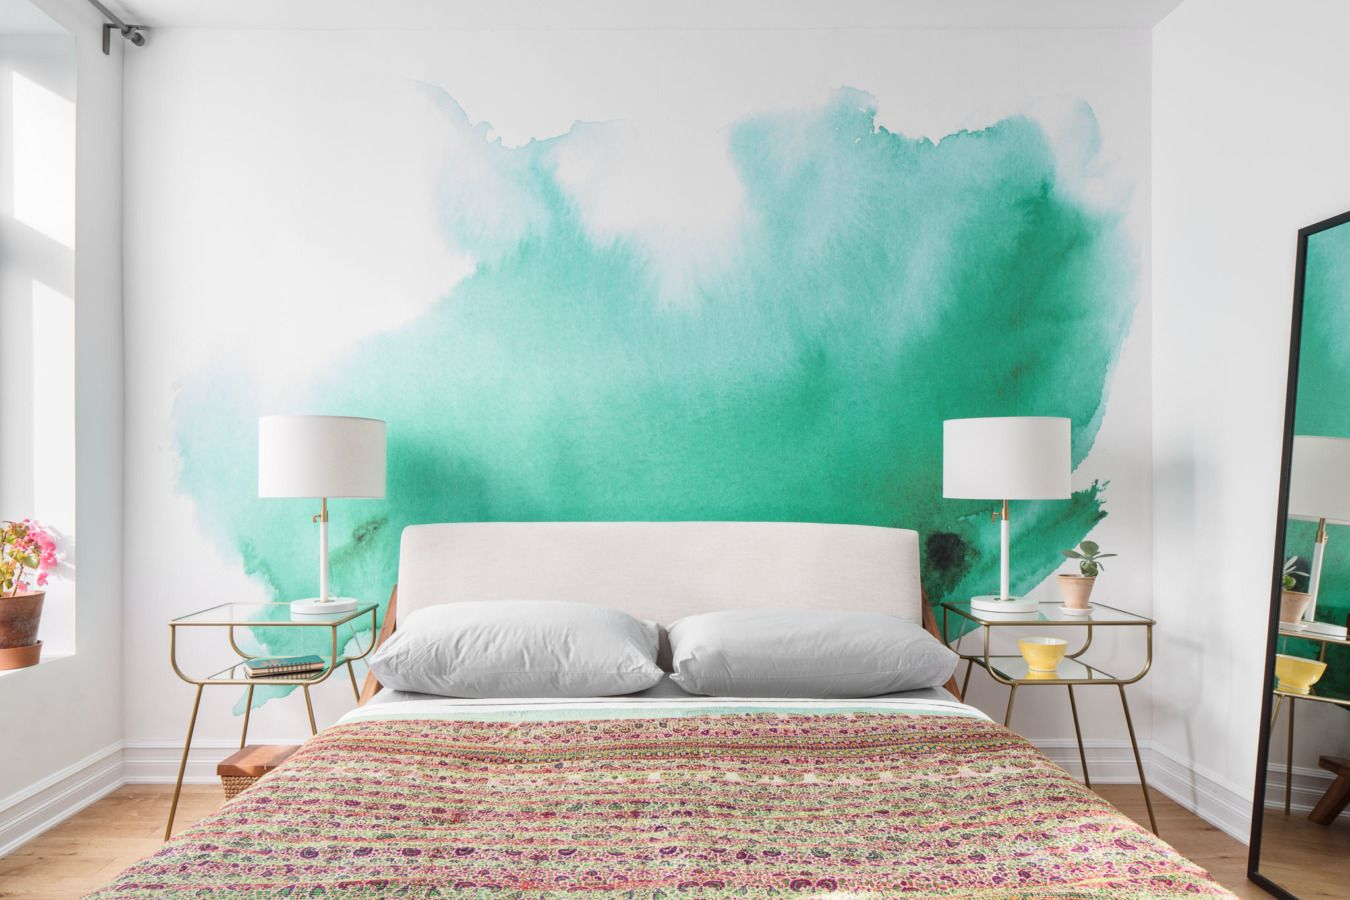 High Quality Designer Picks: The Best Sources For Wallpaper